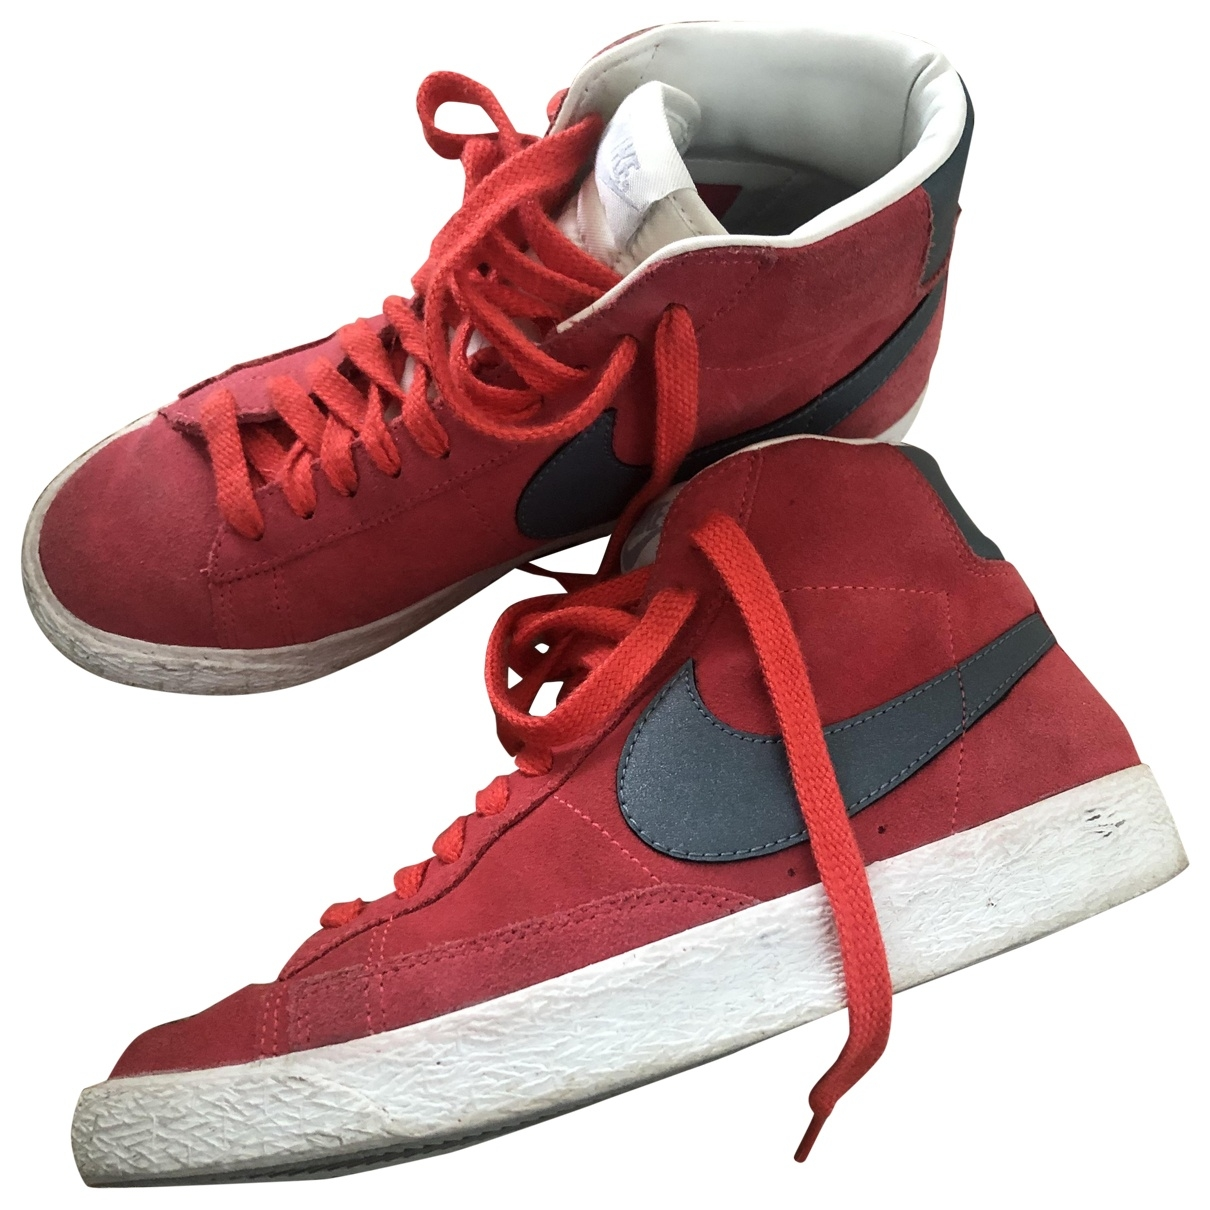 Nike Blazer Red Suede Trainers for Women 38.5 EU